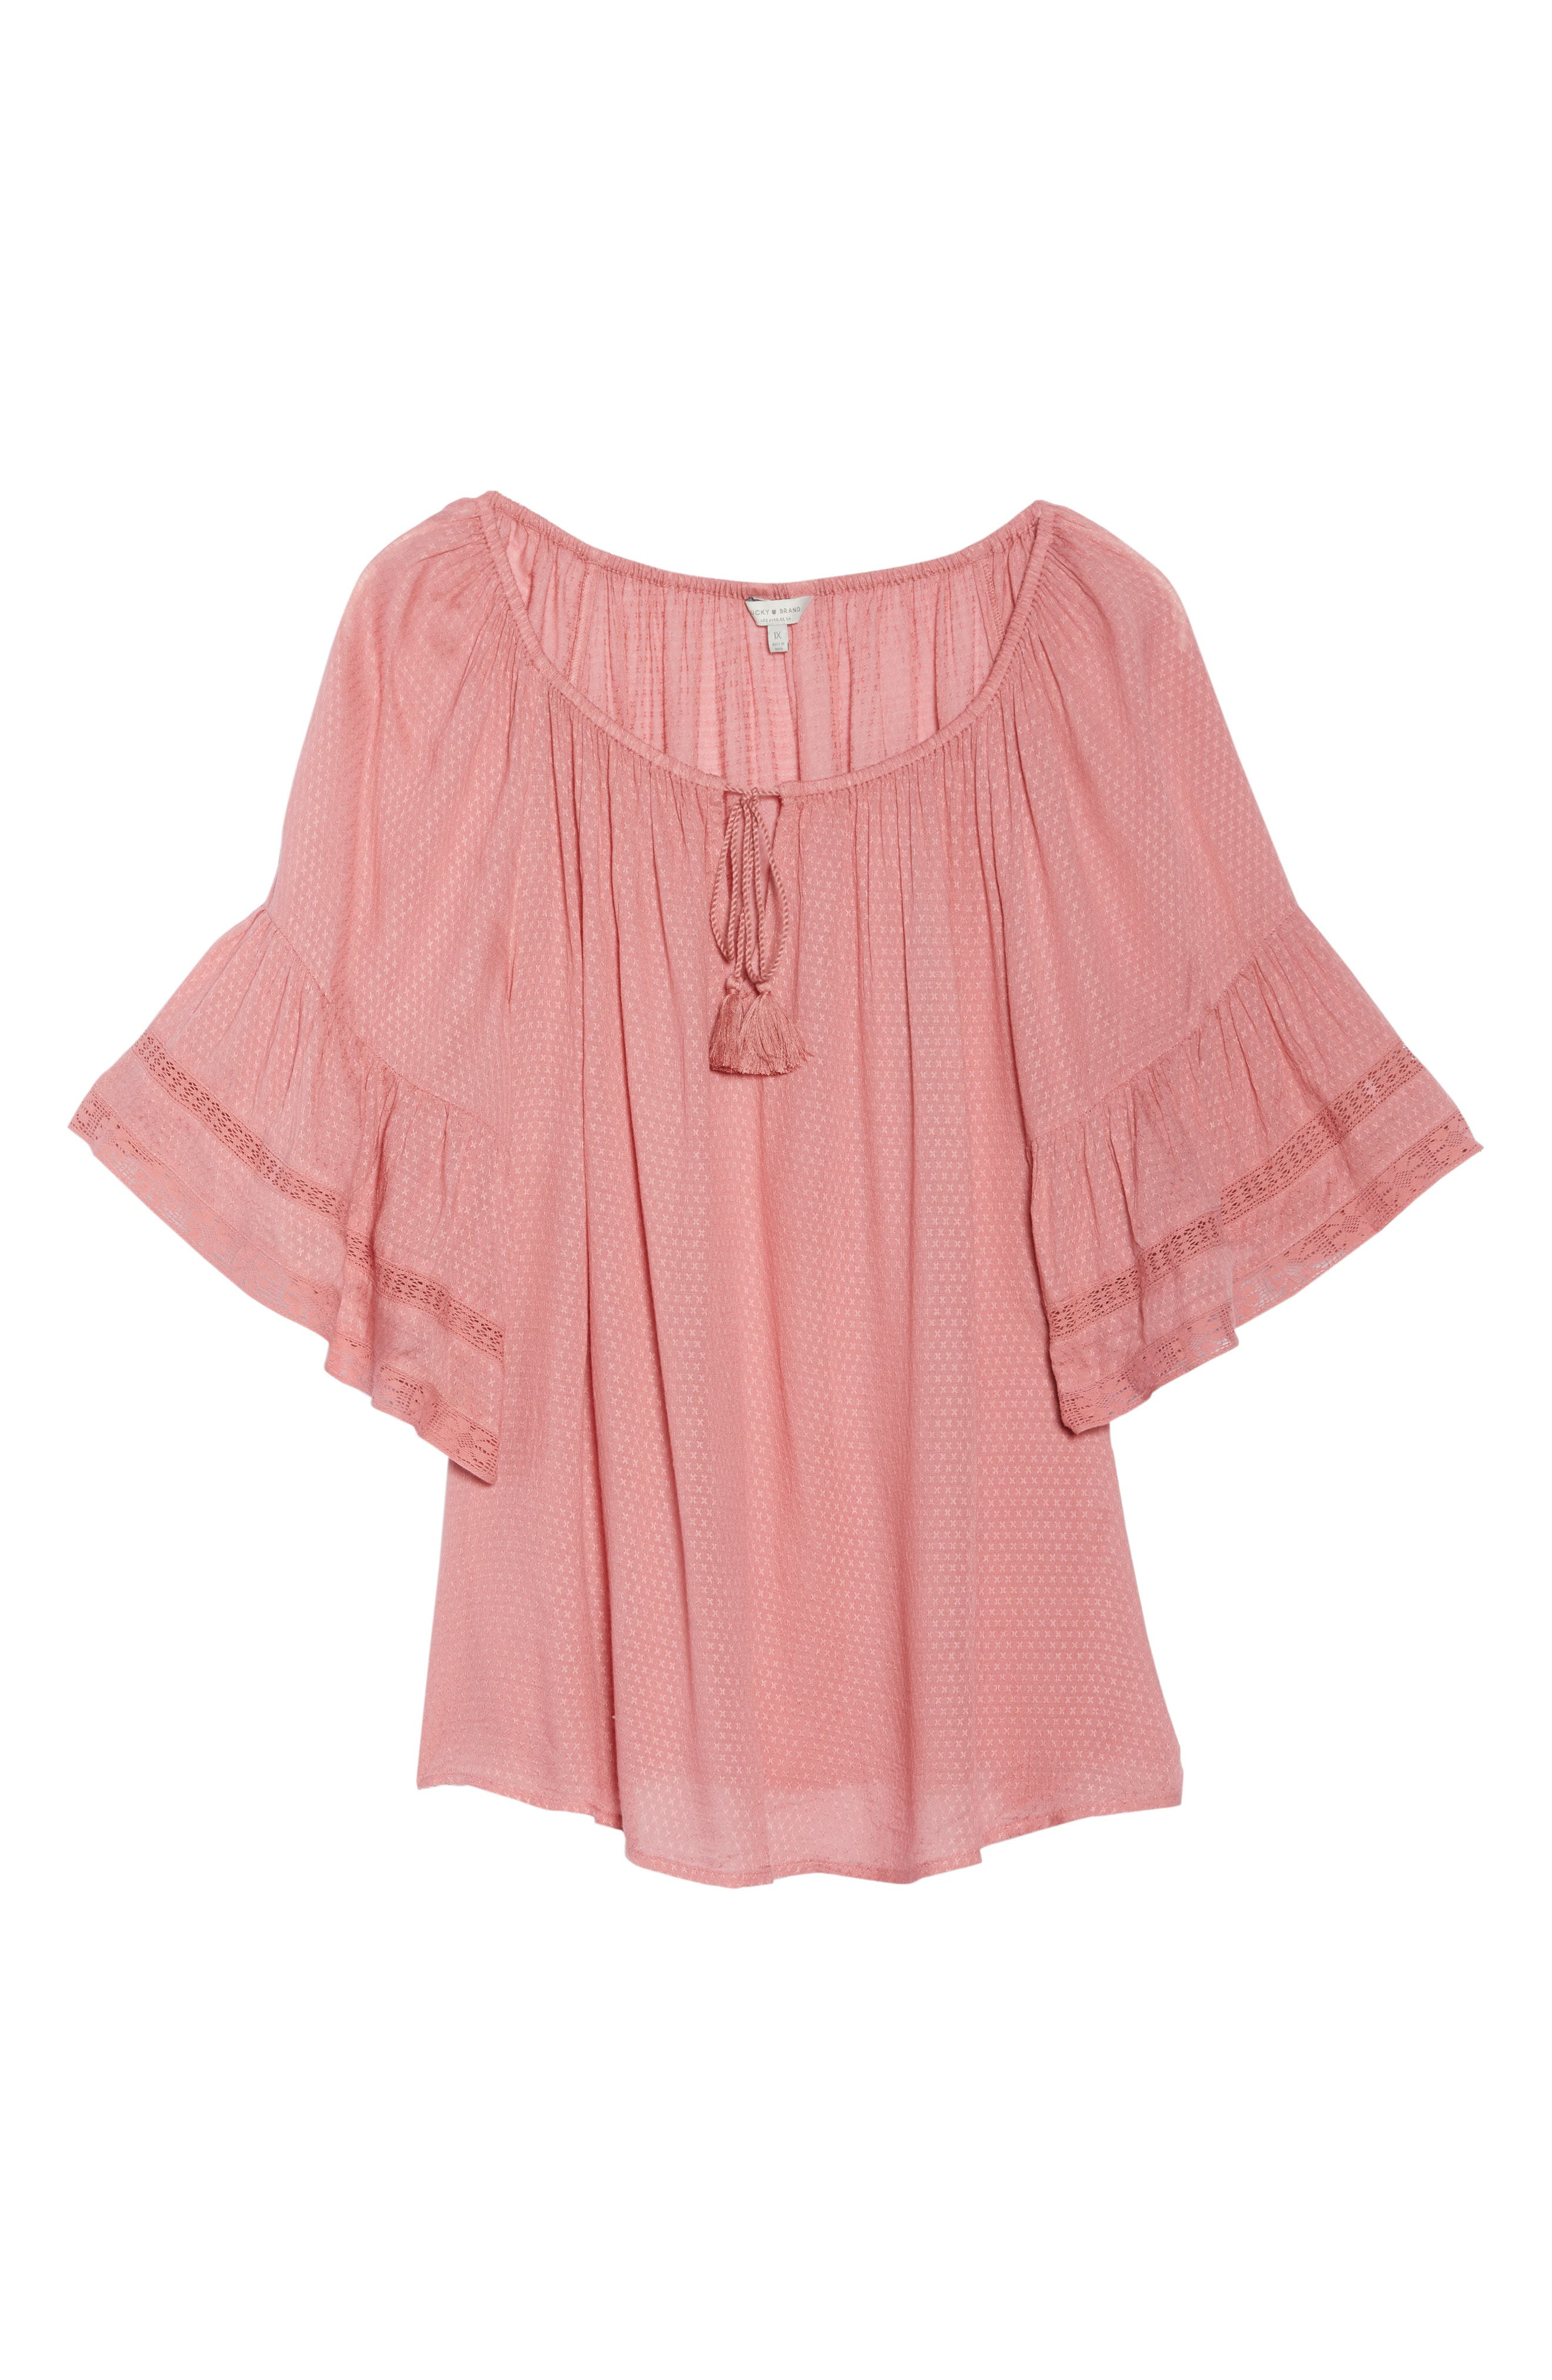 Bell Sleeve Peasant Top,                             Alternate thumbnail 7, color,                             Rose